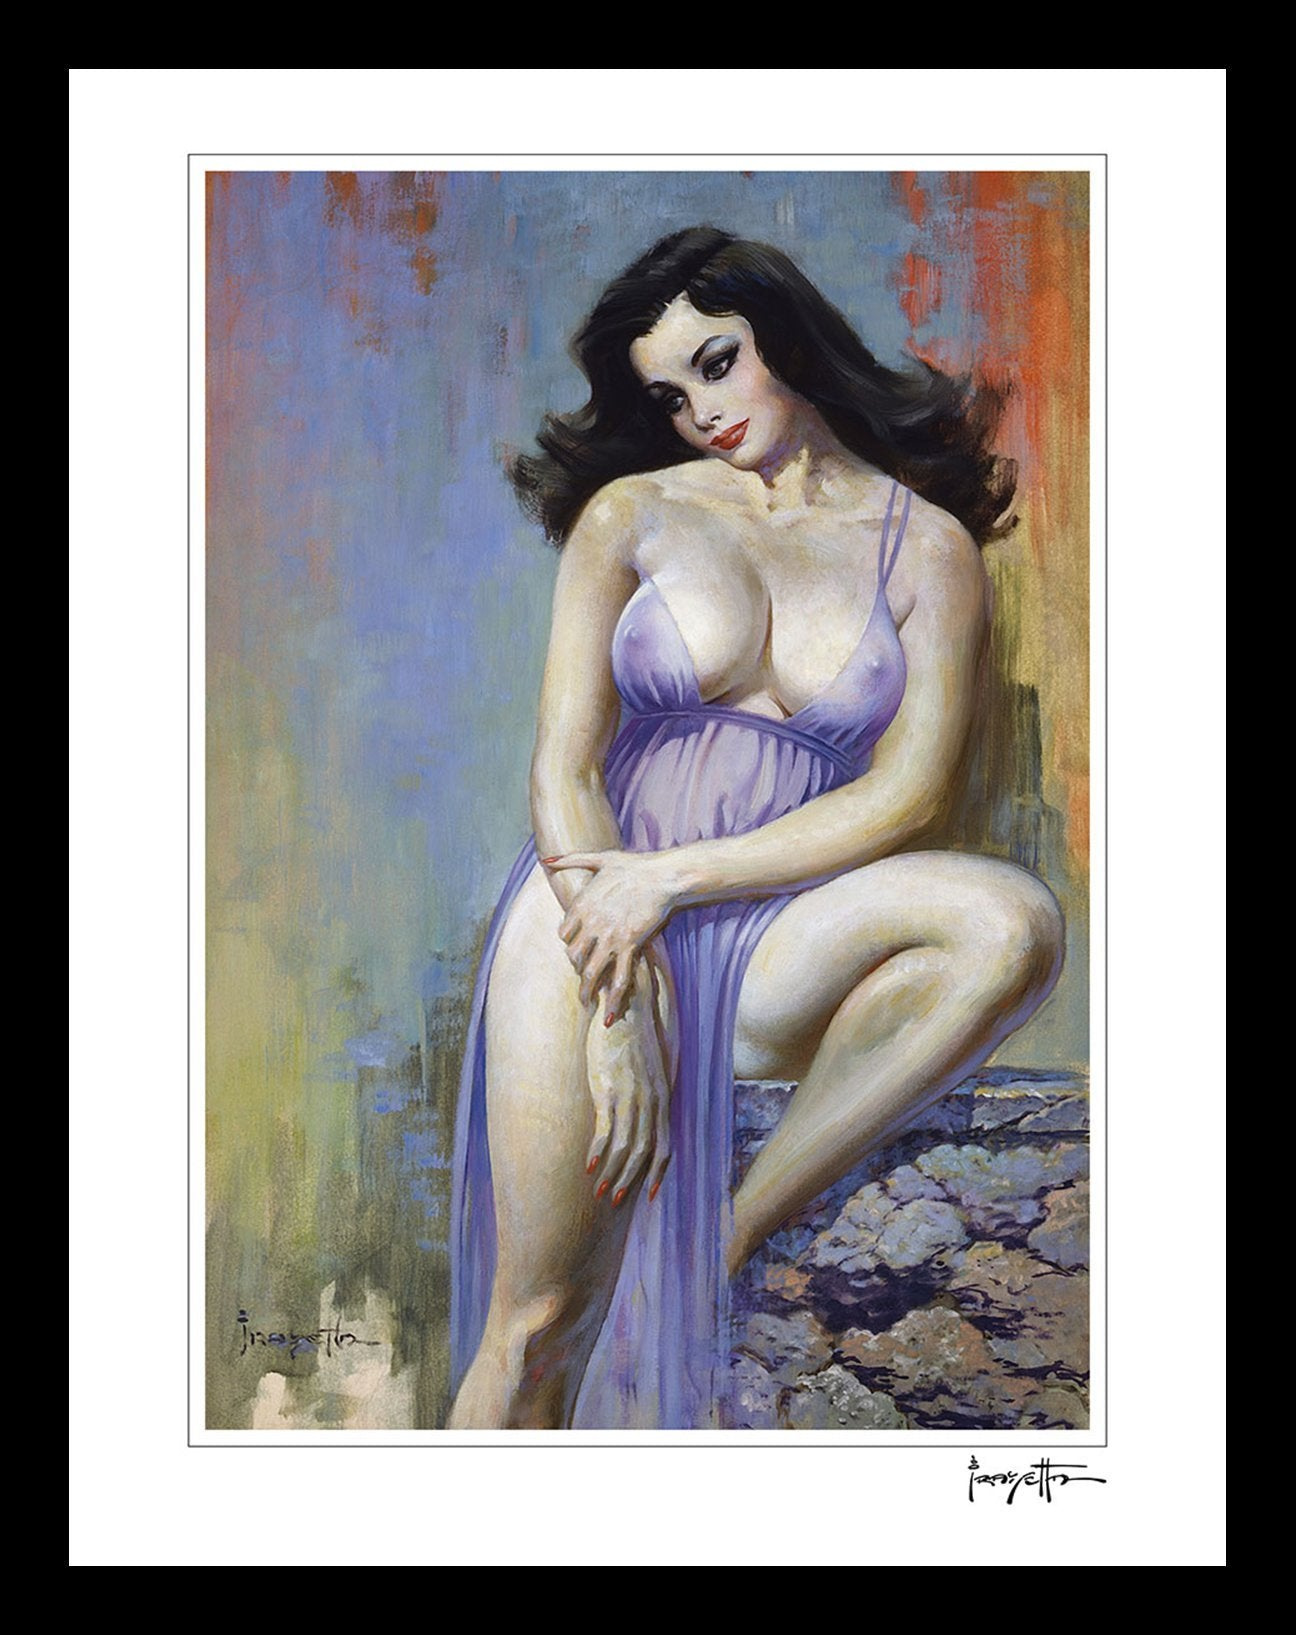 FrazettaGirls Art Print Framed print / Stretched on wooden bar / 18x24 Brooklyn Dreams Print